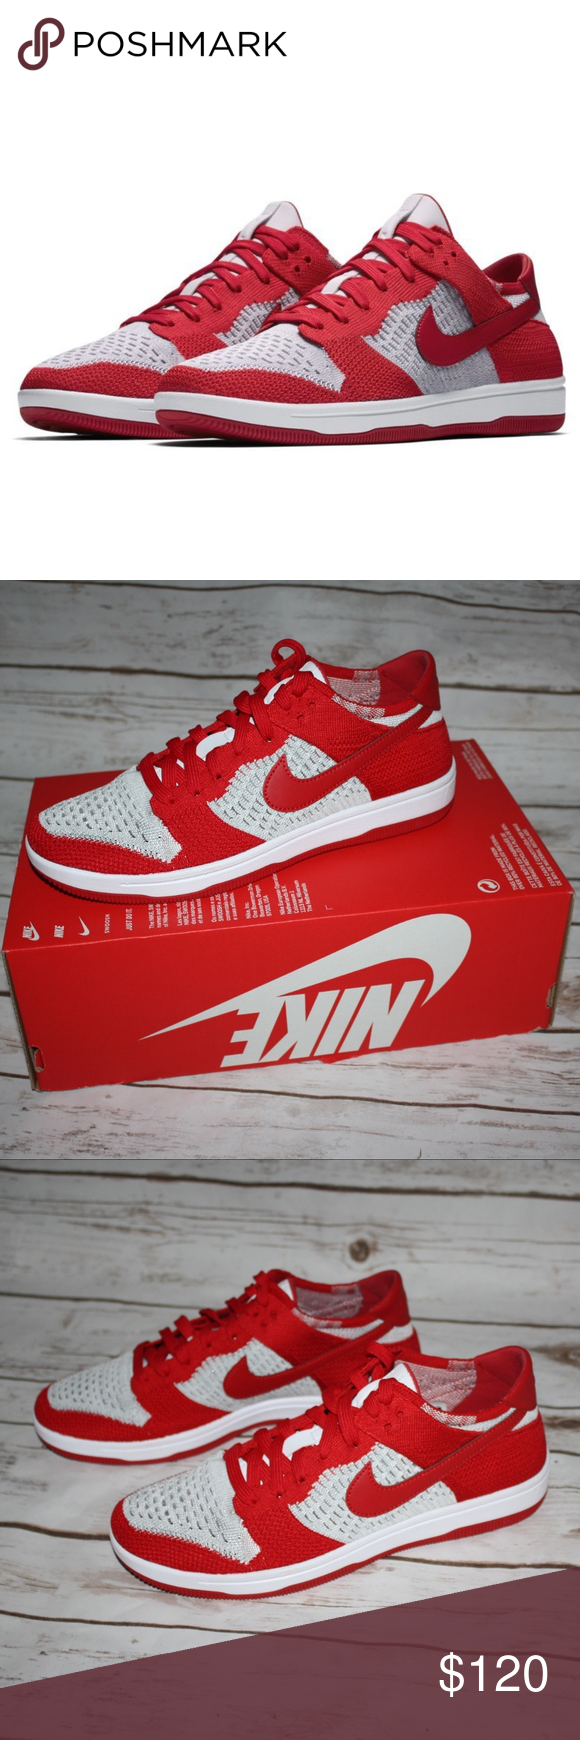 New Nike Dunk Low Flyknit Brand New with box without lid Color  University  Red Wolf Grey White Style  917746 600 Nike Shoes Sneakers 944ad7368